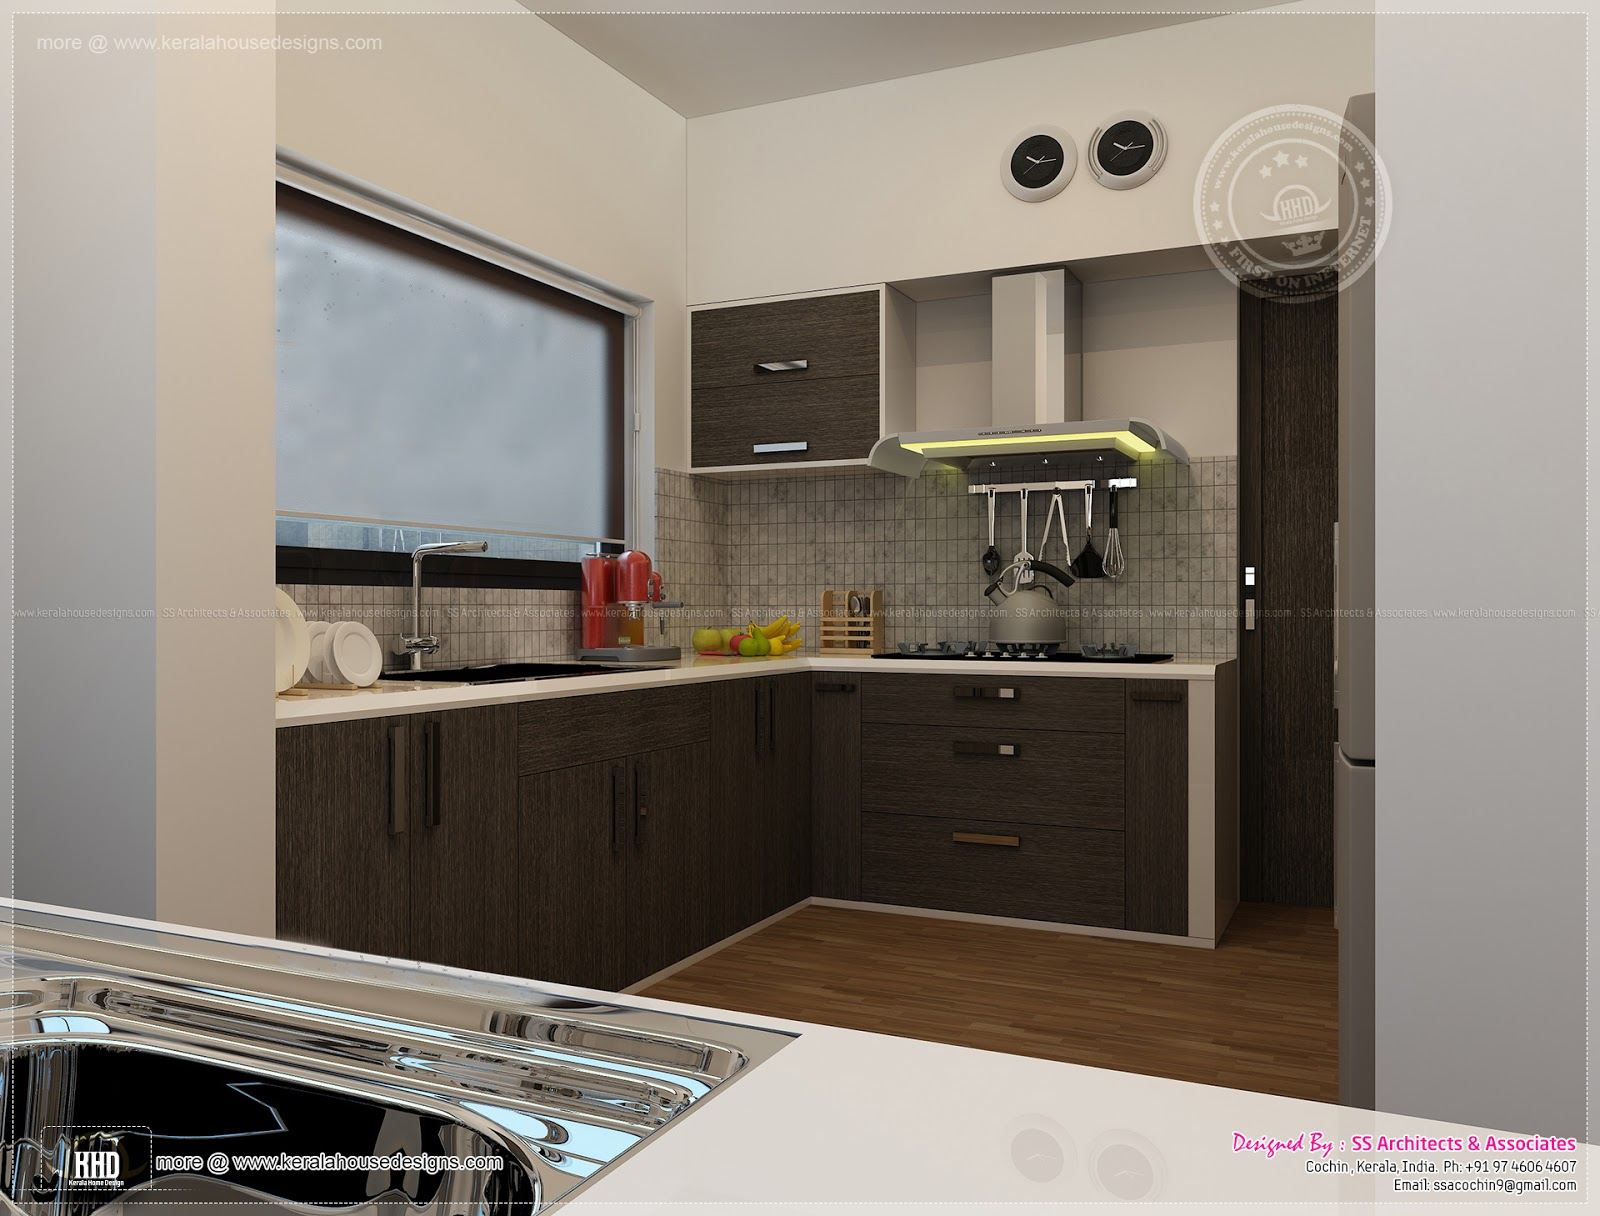 to know more about these kitchen interior designs contact house design